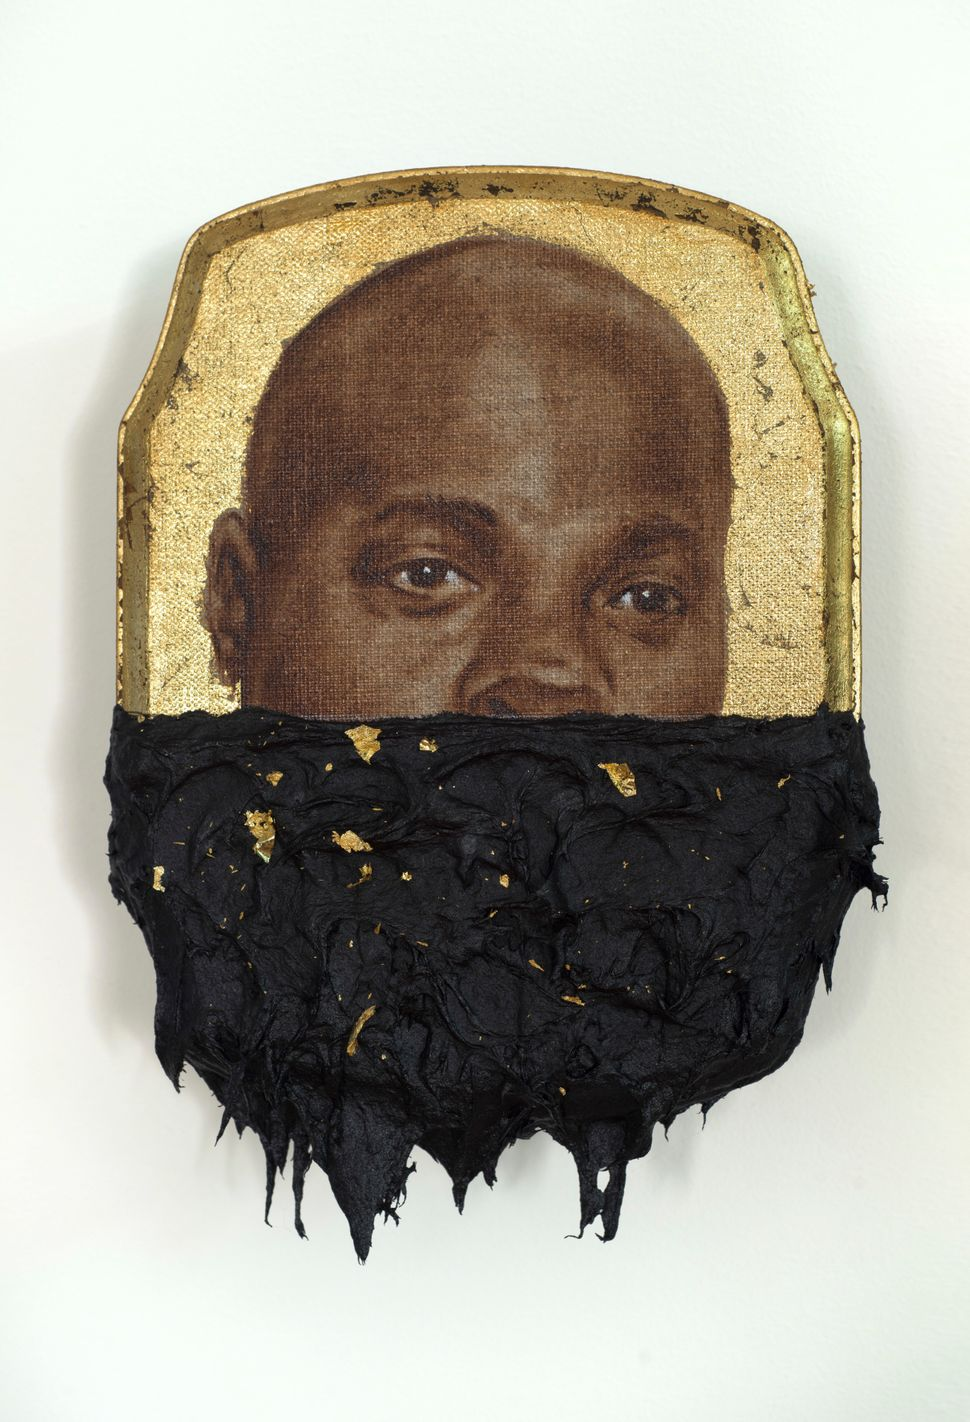 Jerome IV, 2014 oil, gold leaf and tar on wood panel 10 x 7 x 1 inches © Titus Kaphar. Courtesy of the artist and Jack Shainm